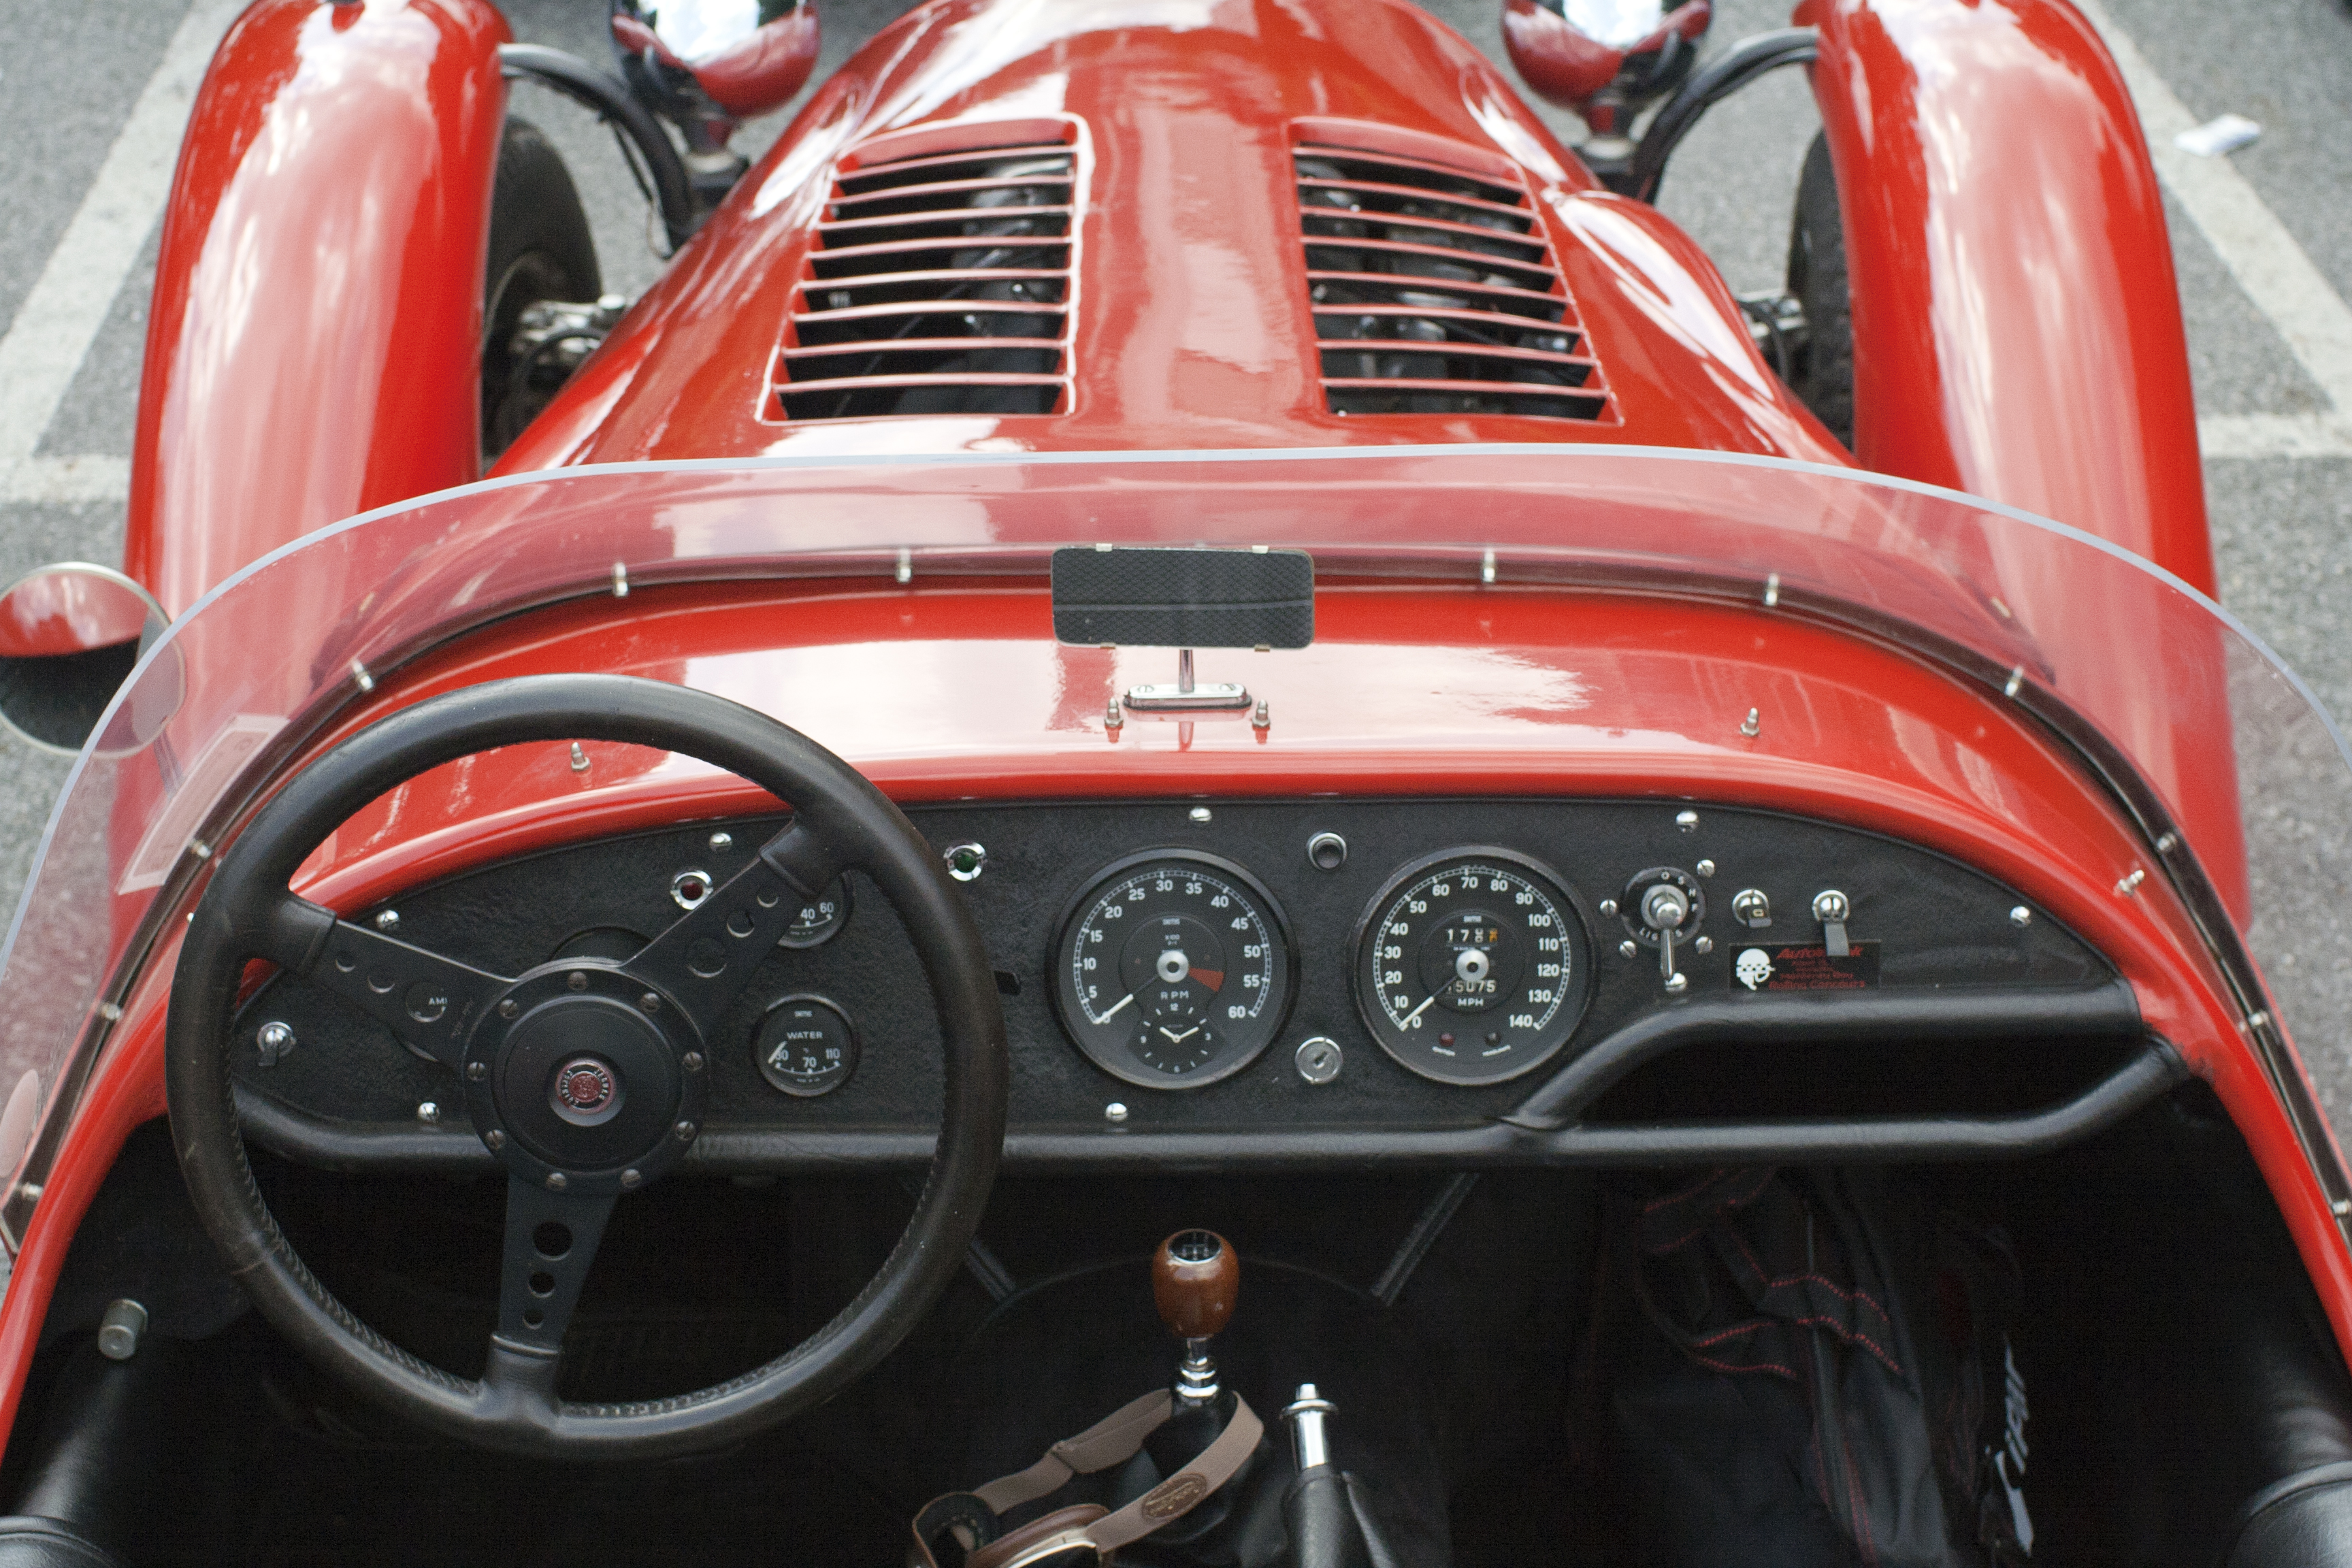 Dash of 1979 Kougar sports car